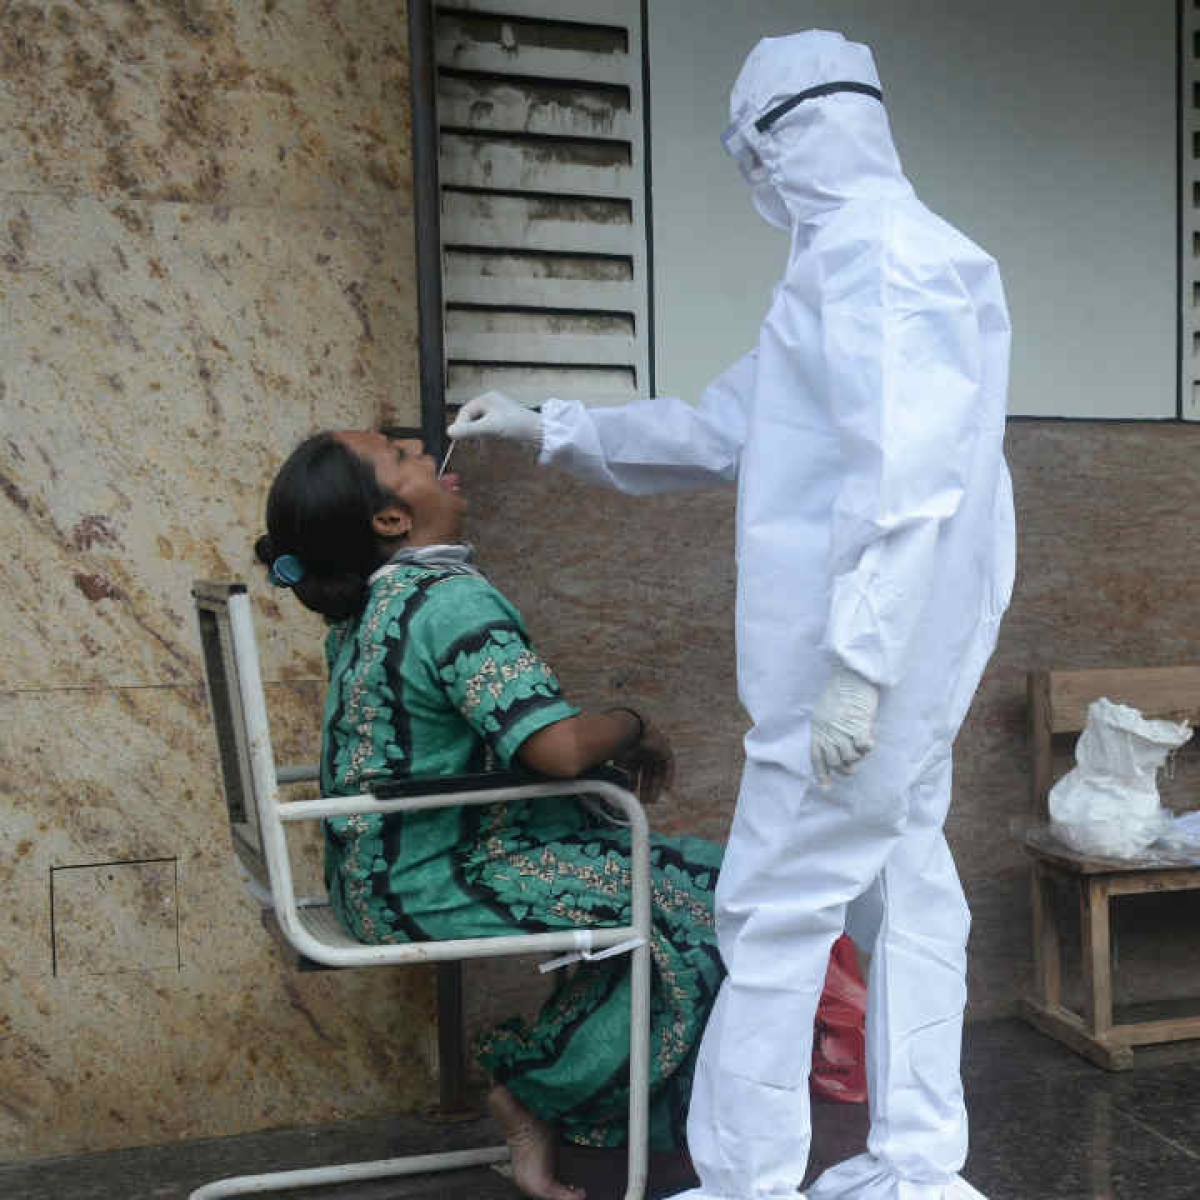 India reports 67,208 fresh COVID-19 cases, 2,330 new fatalities